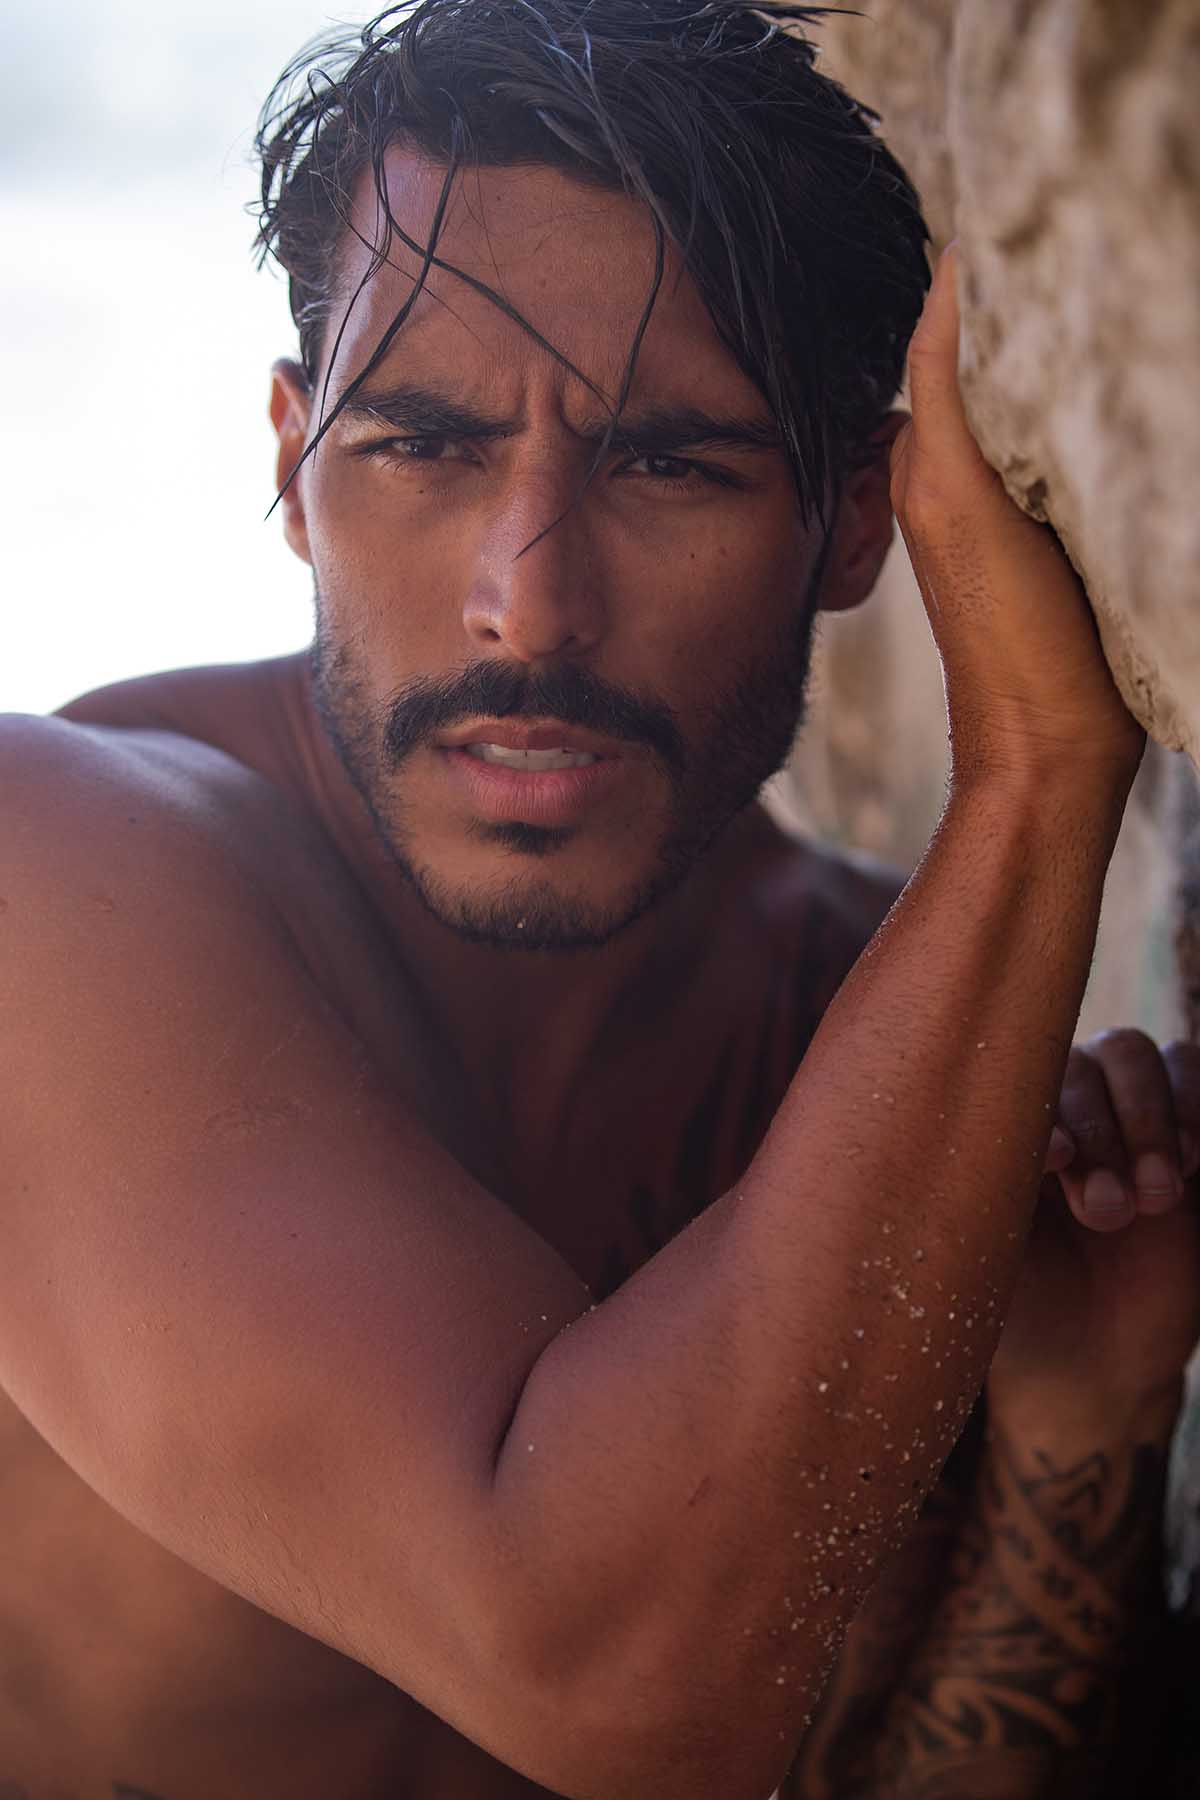 Paulo Philippe by Ruben Branches for Brazilian Male Model